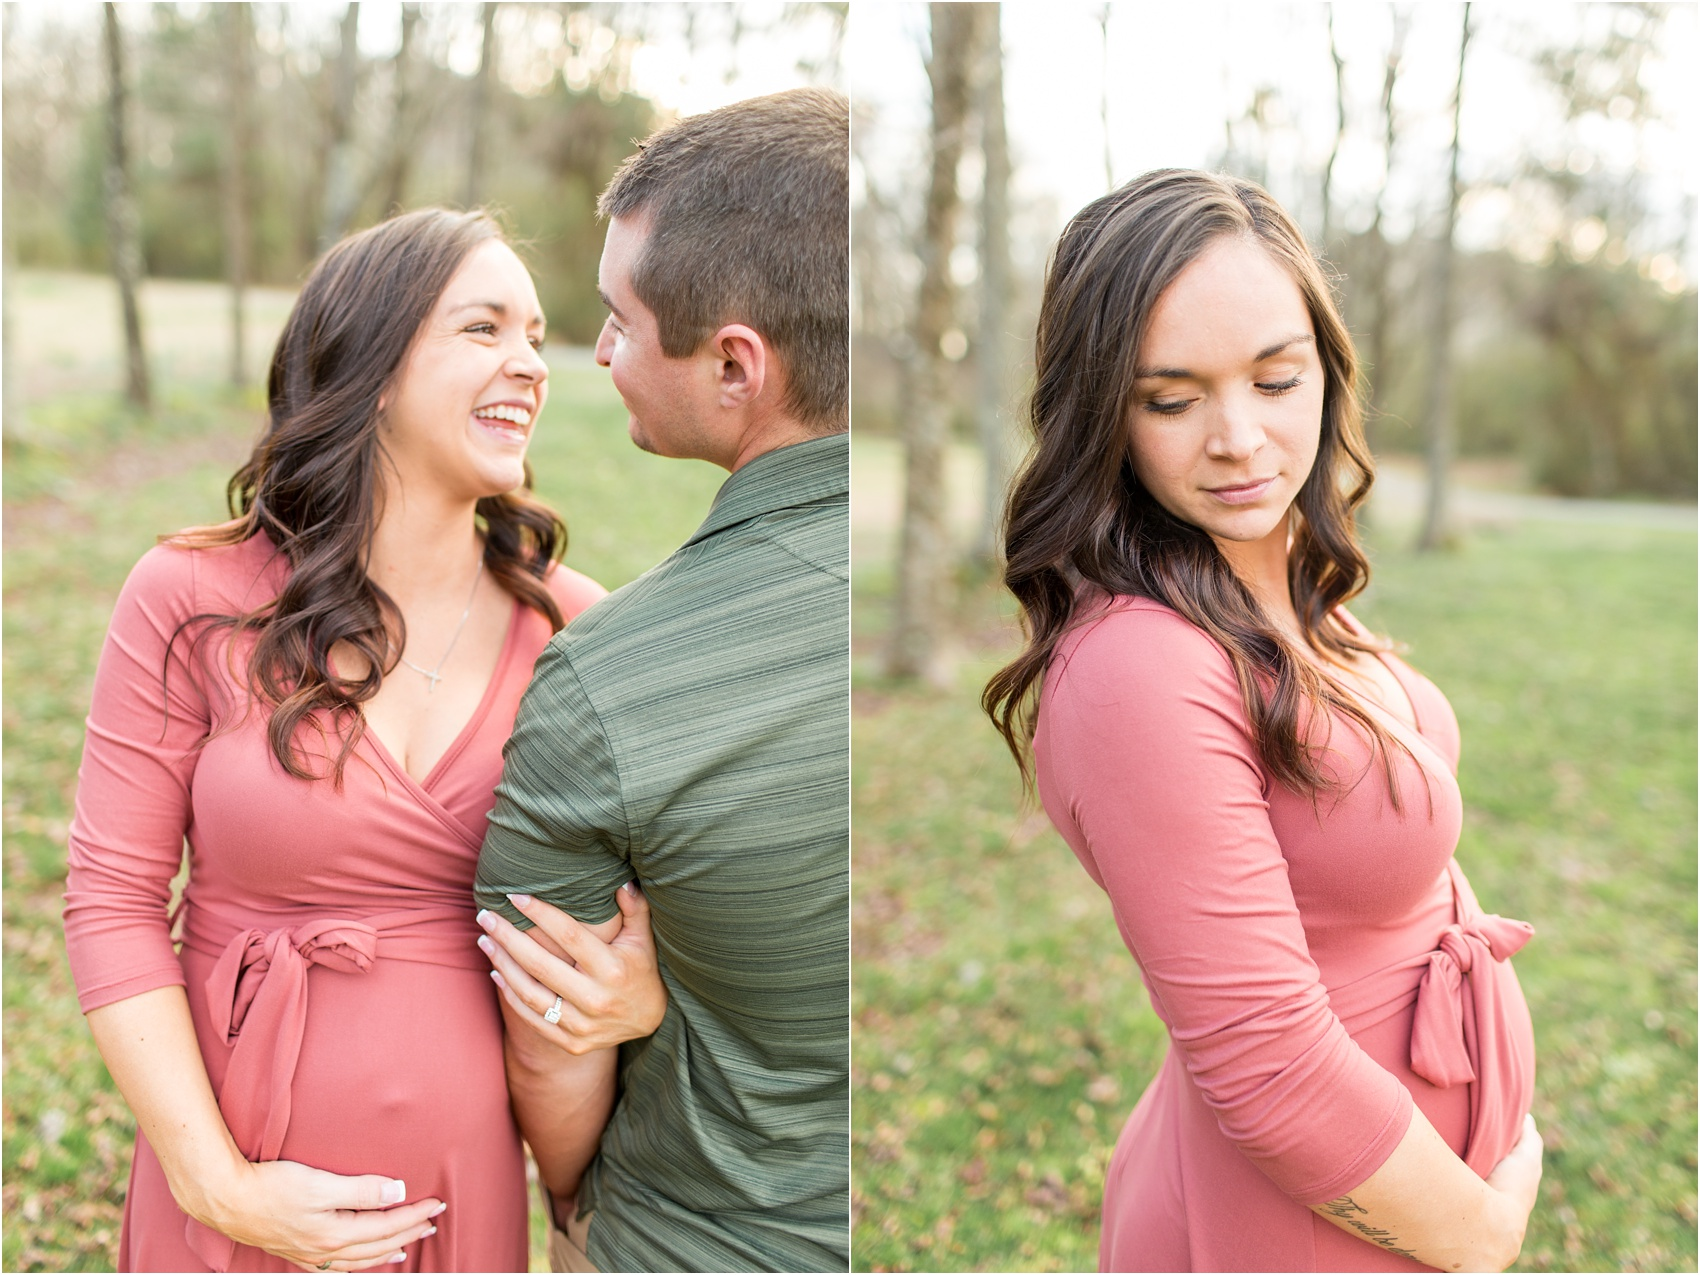 Savannah Eve Photography- Alexis & Josh- Maternity Session-16.jpg